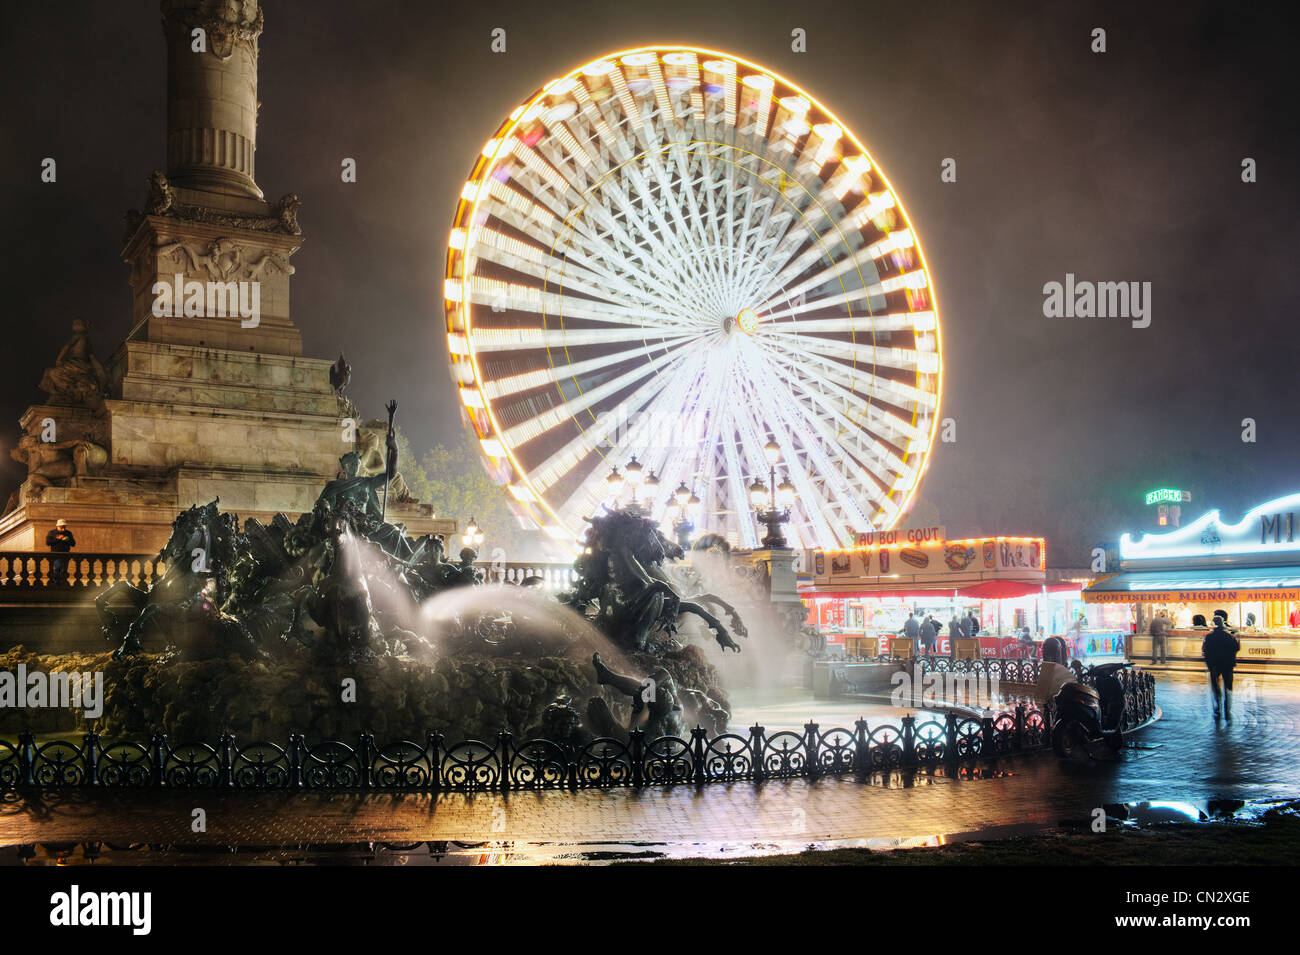 Ferris wheel at night, Bordeaux, France Stock Photo